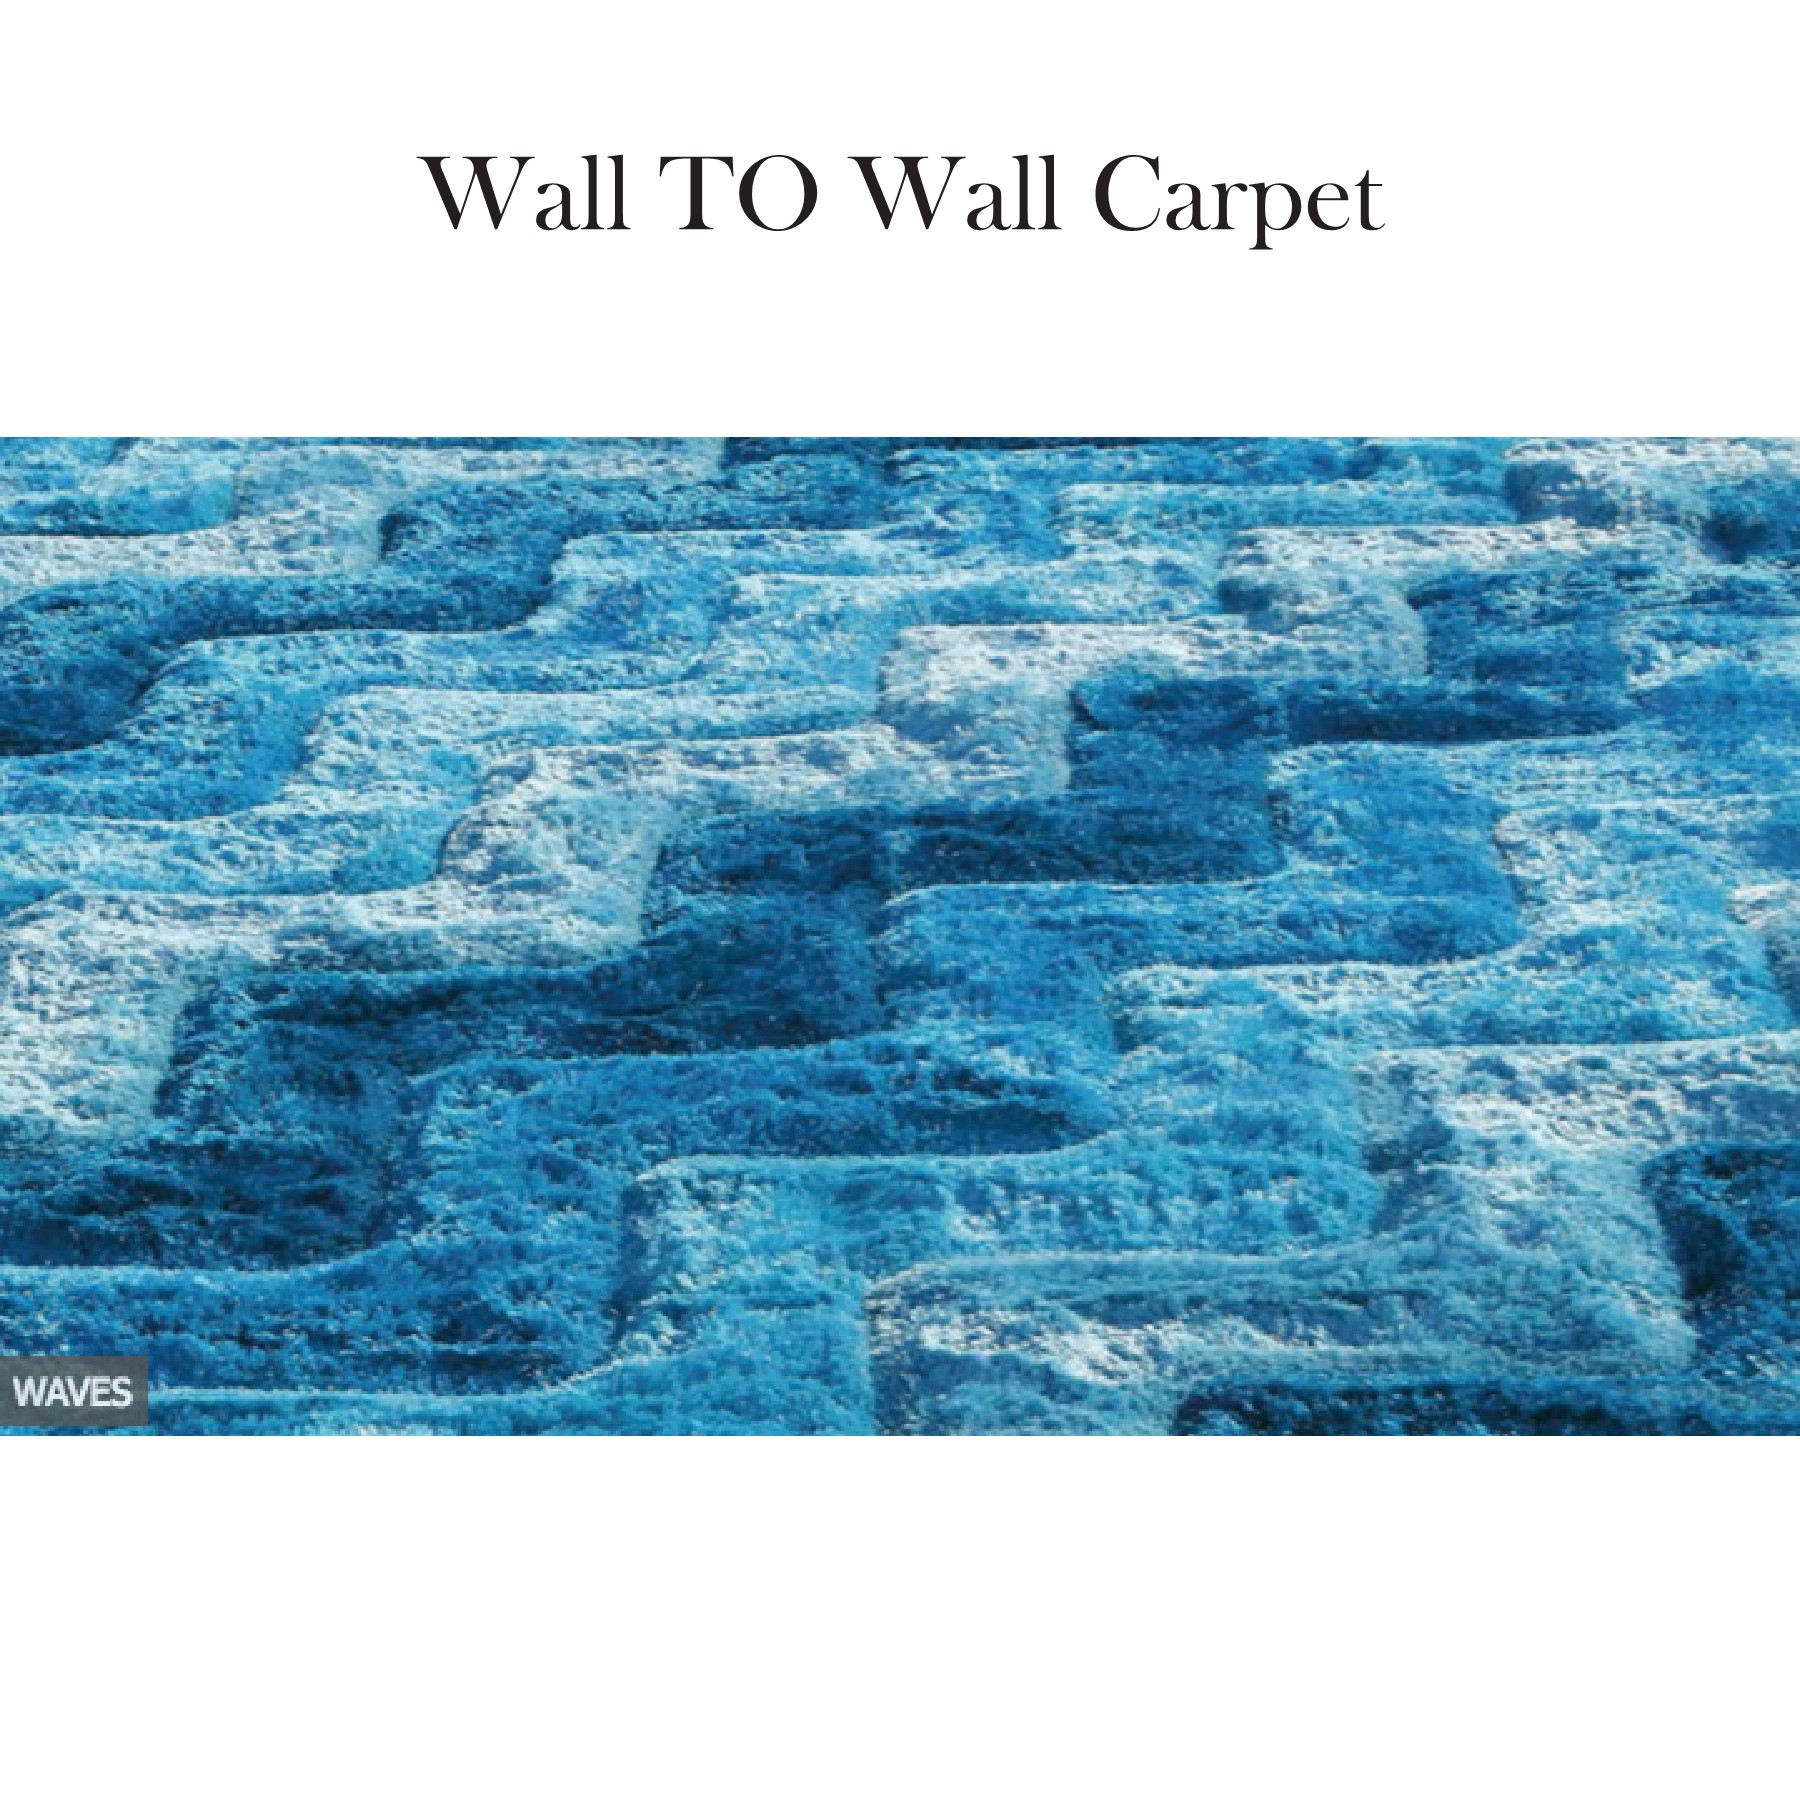 Image of: Wall To Wall Carpet